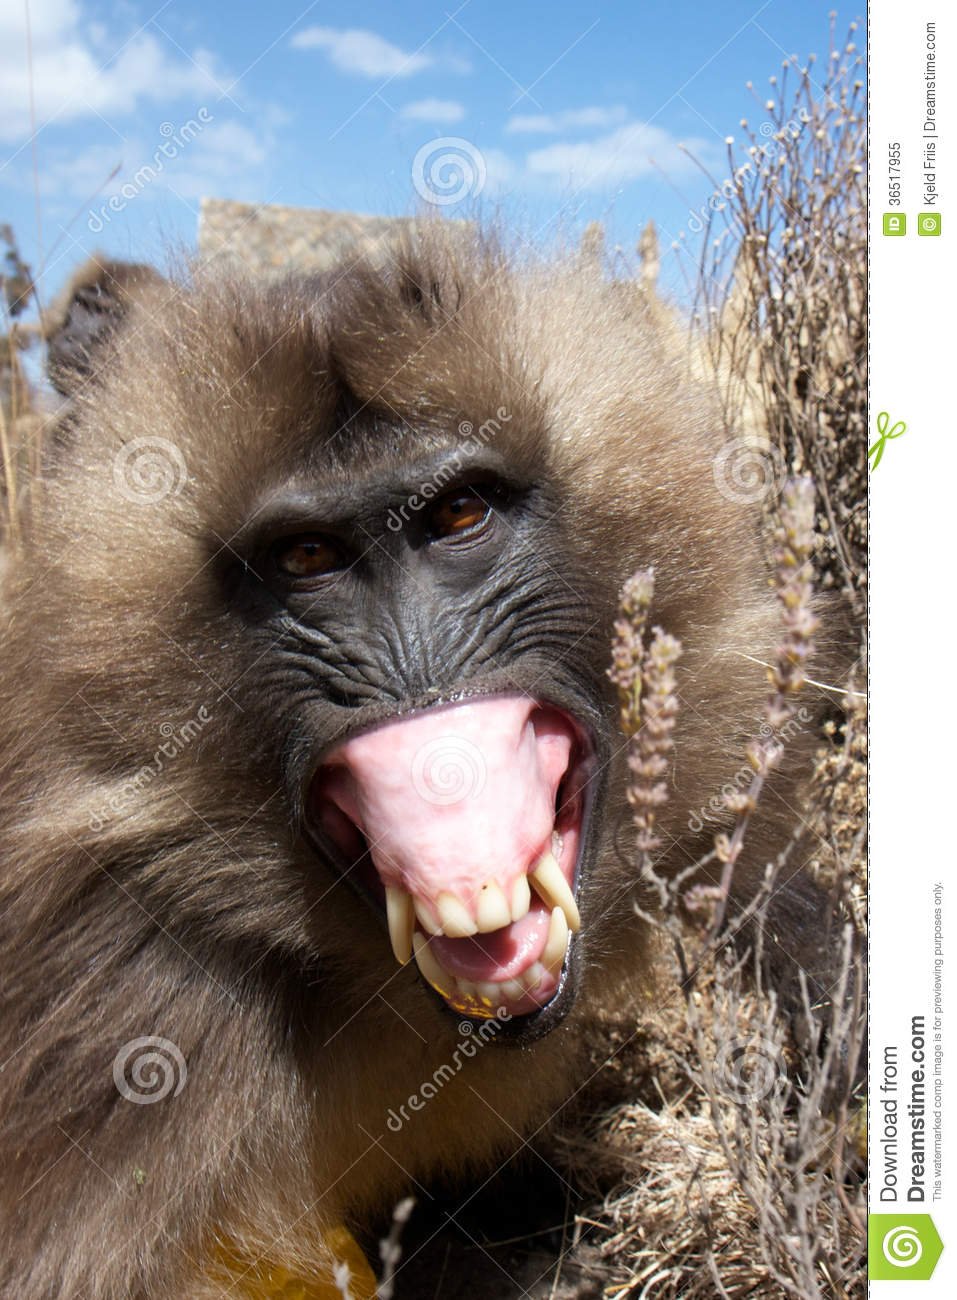 Angry baboon face